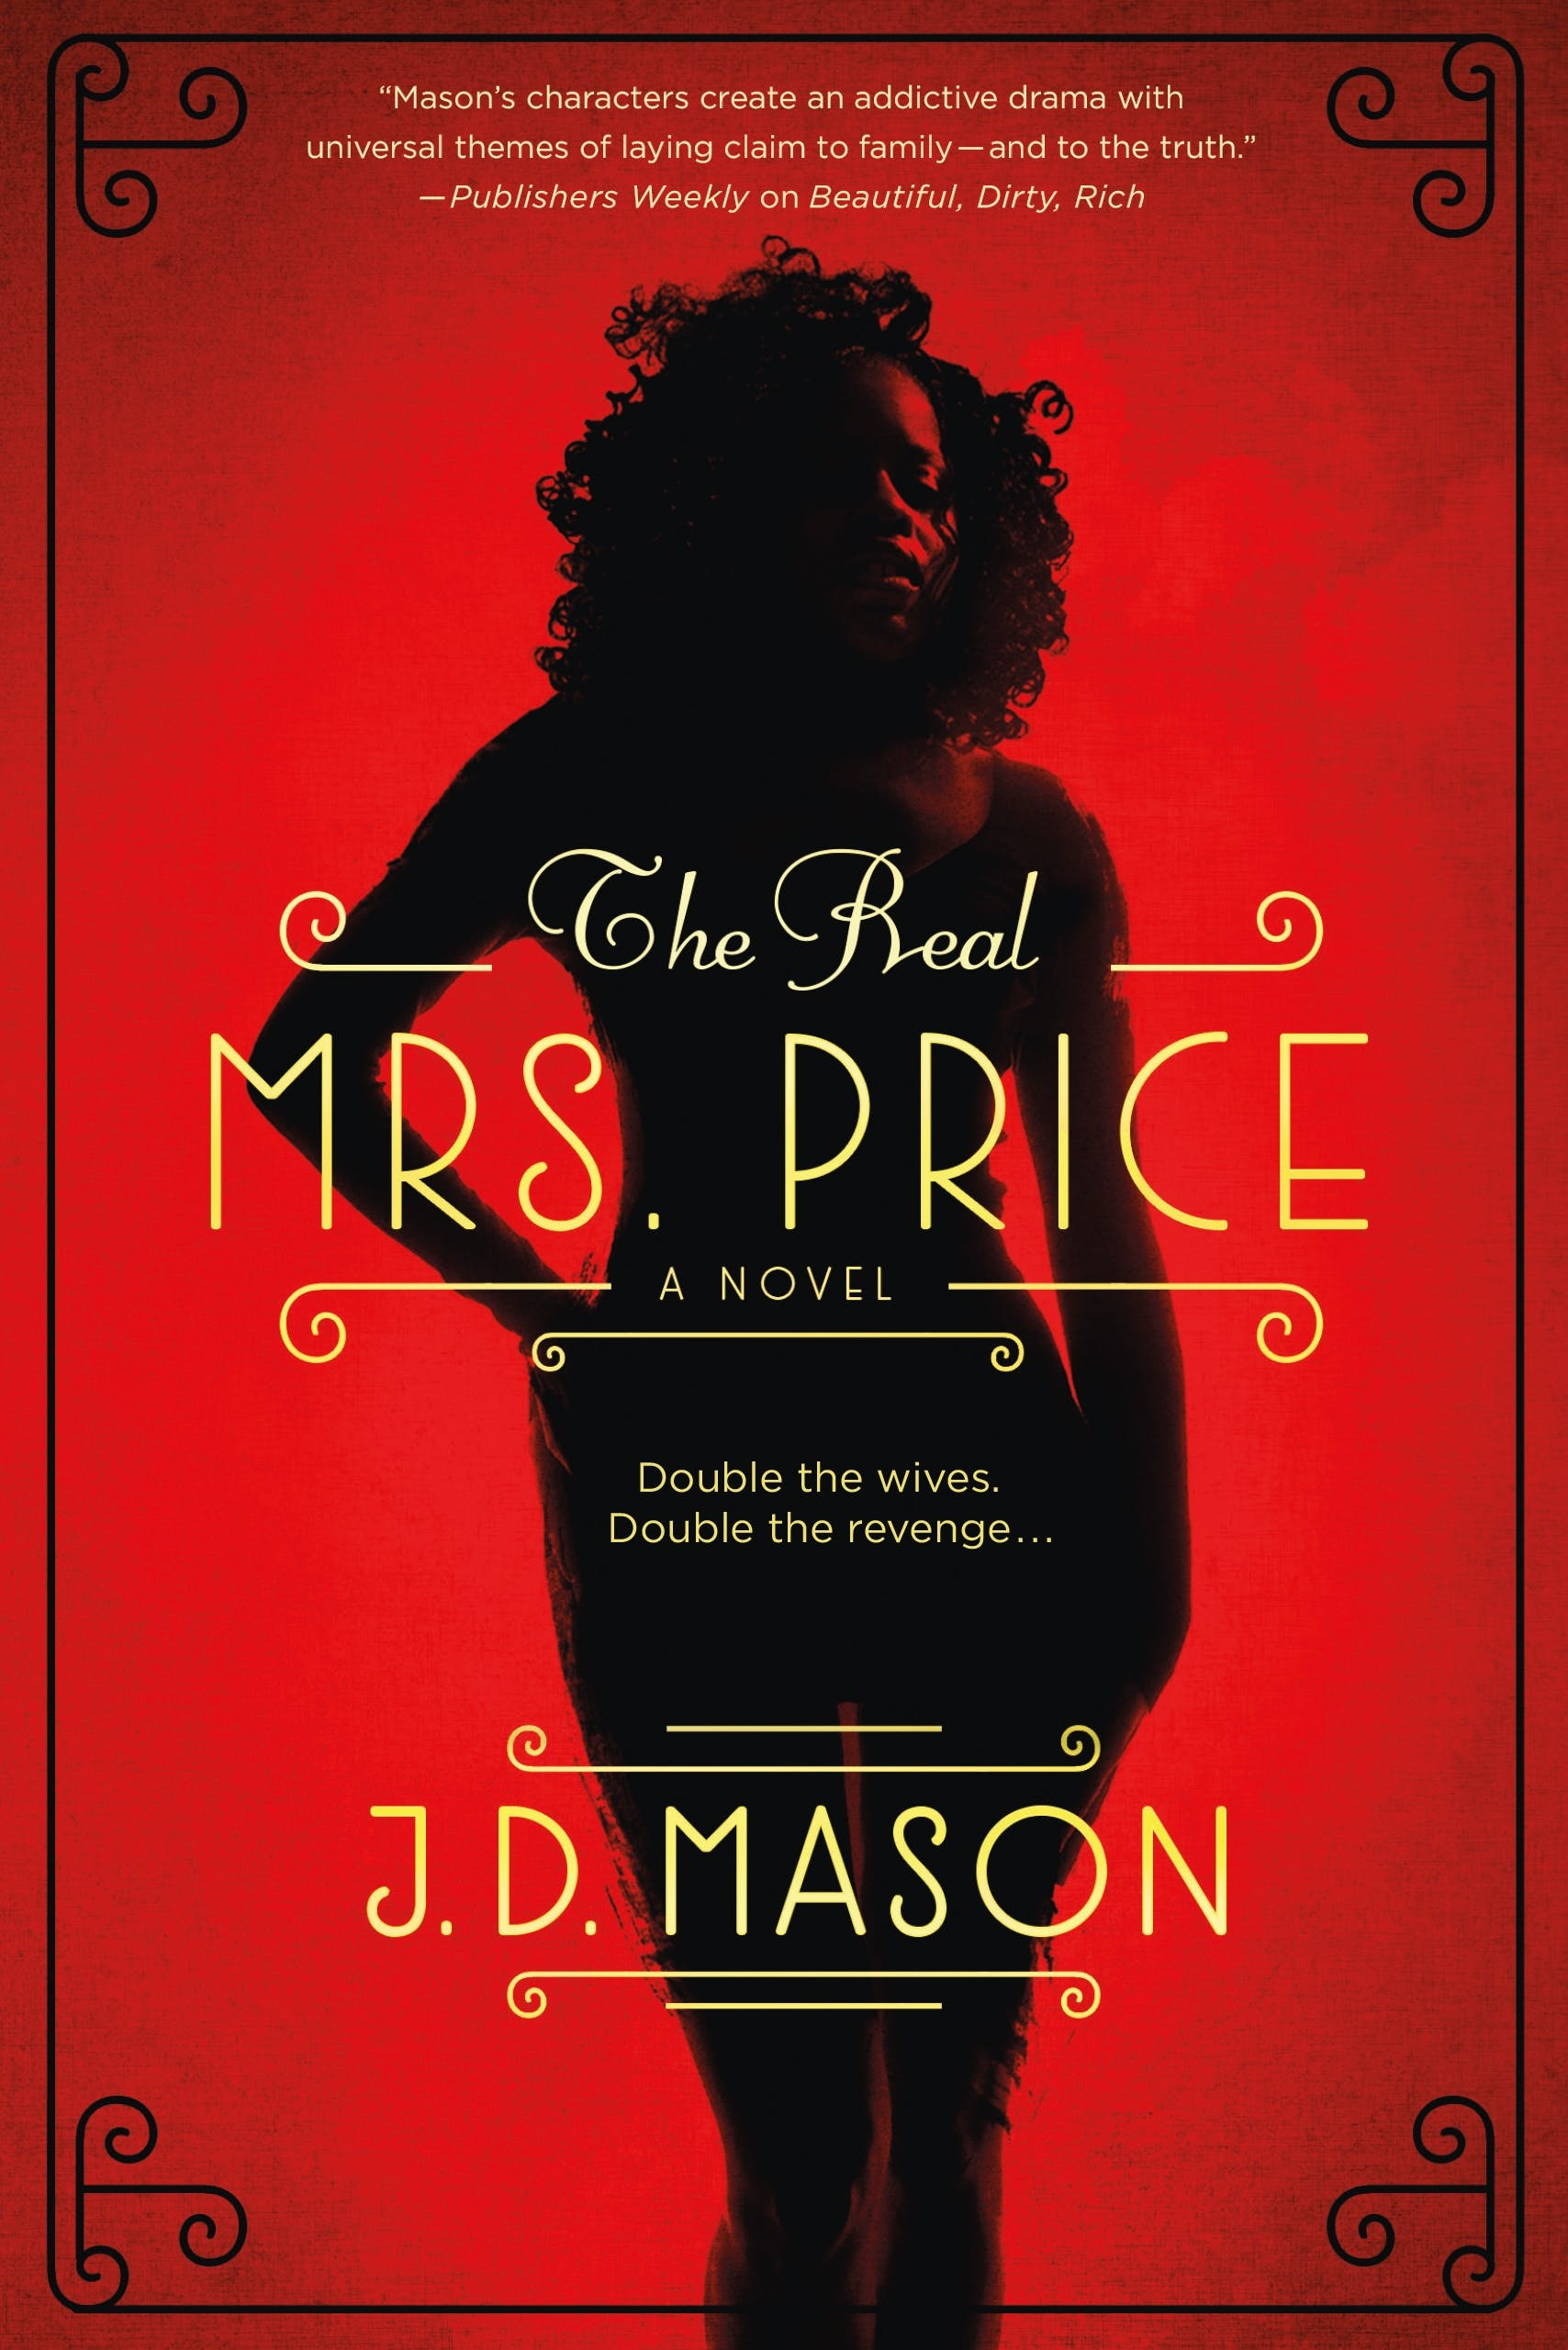 Image of The Real Mrs. Price